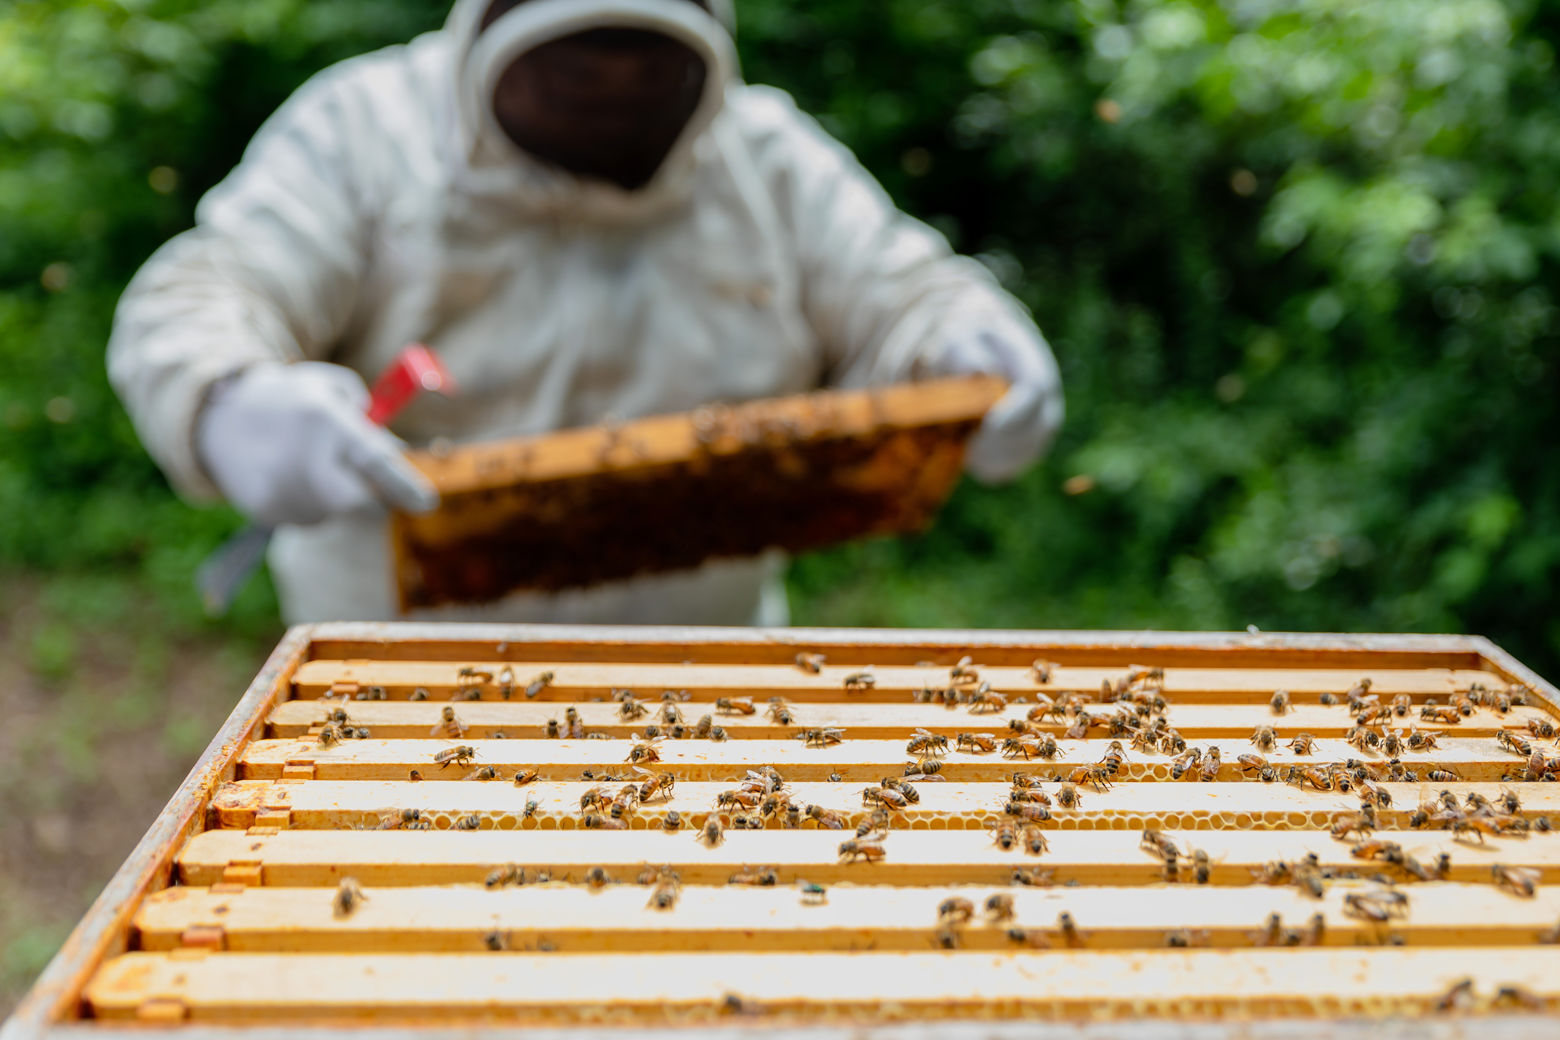 Honeybees live in multi-tiered boxes when they are kept in backyards and on rooftops. (Courtesy Accor Hotels)